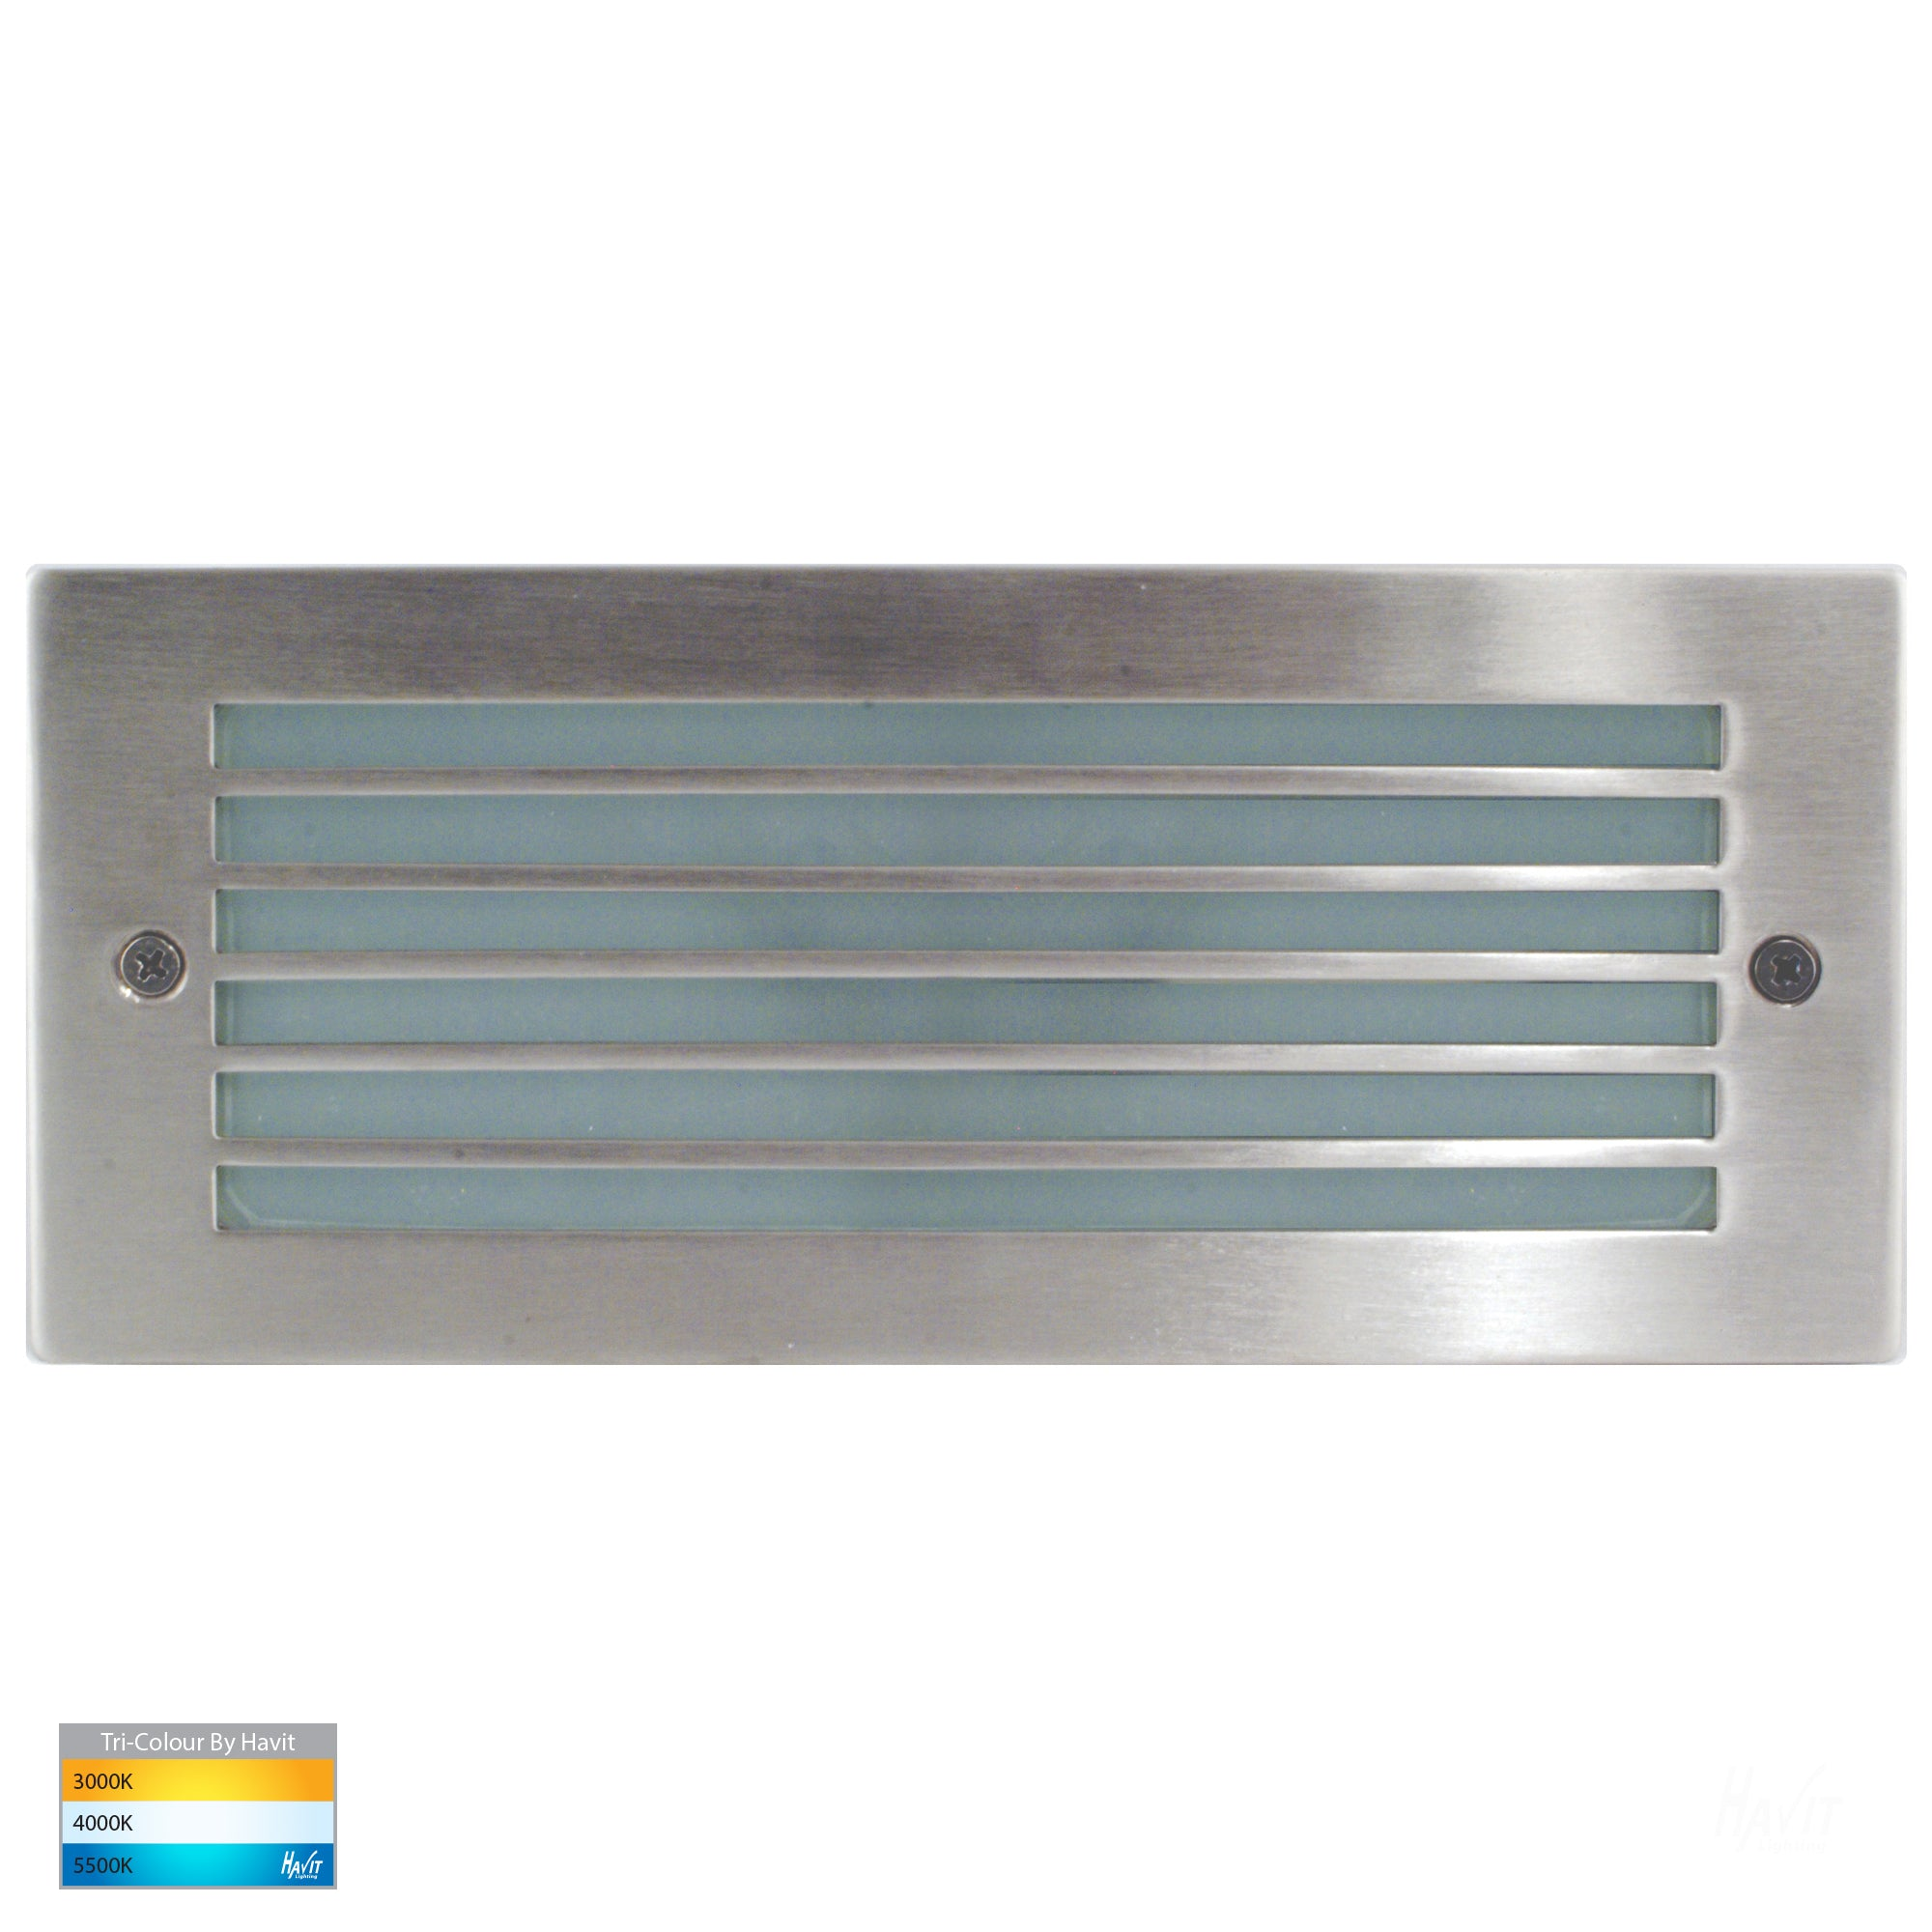 HV3004T-SS316 - Bata 316 Stainless Steel LED Brick Light with Grill